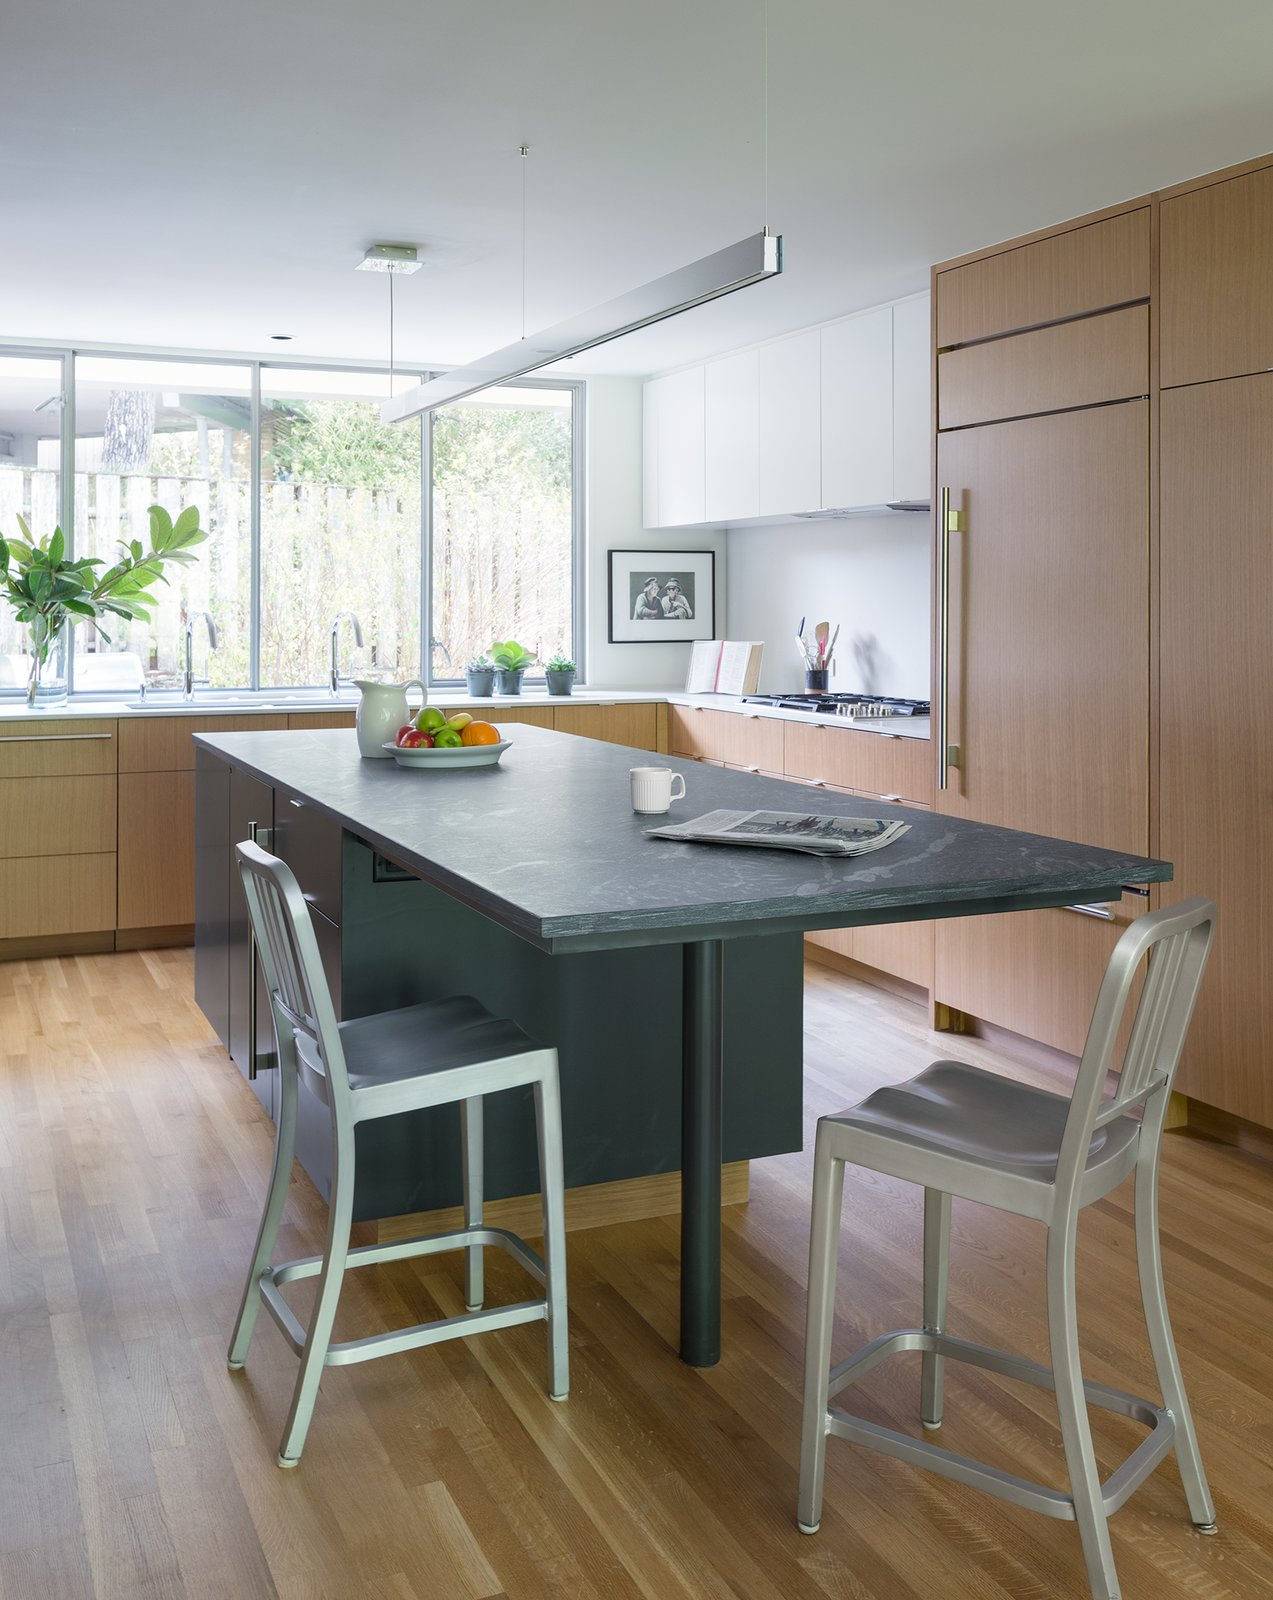 Kitchen, Stone Counter, Refrigerator, Wood Cabinet, Cooktops, Pendant Lighting, Light Hardwood Floor, White Cabinet, and Undermount Sink  Inwood Place by Tim Cuppett Architects